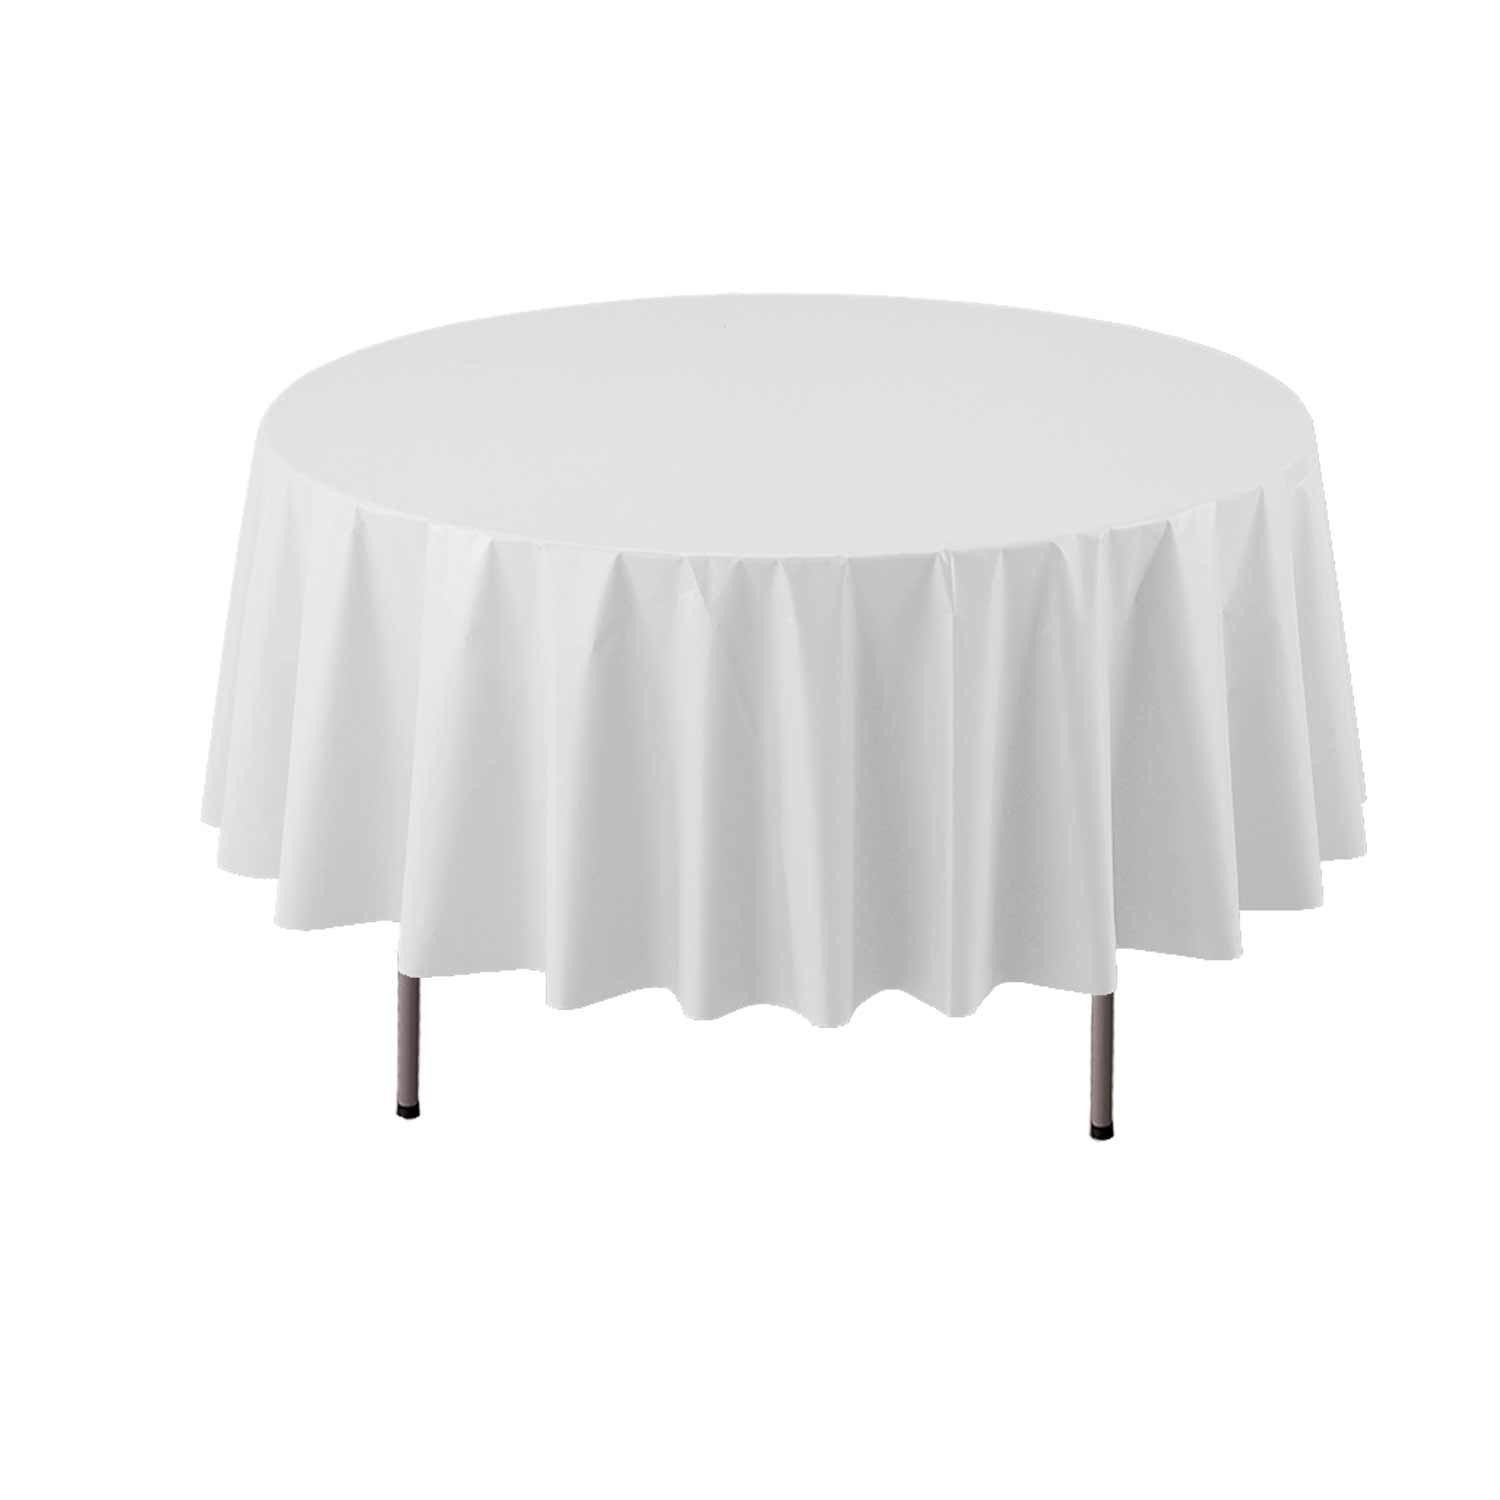 White Party Essentials Heavy Duty 84  Round Plastic Table Cover Available in 22 colors, Silver